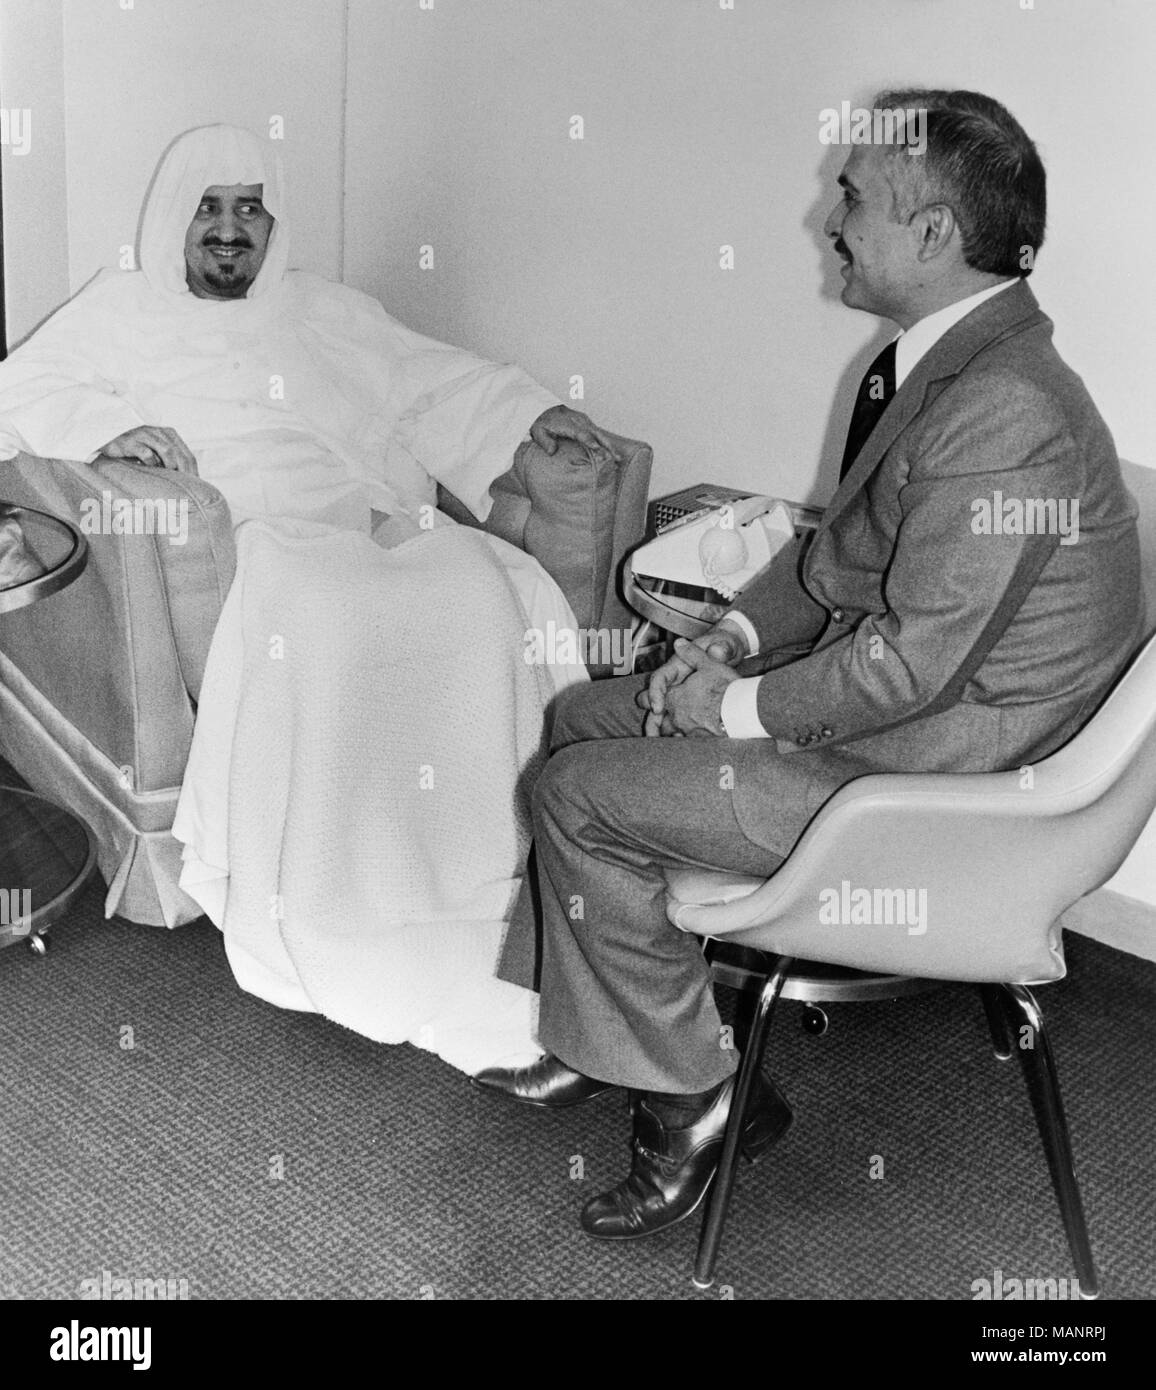 24th February 1977. London. King Hussein of Jordan visits King Khaled of Saudi Arabia at the London Hospital where the King is recovering from a hip operation. the 64 year old Saudi Arabian King received Hussein in his suite at the Wellington Hospital in St. John's Wood. - Stock Image